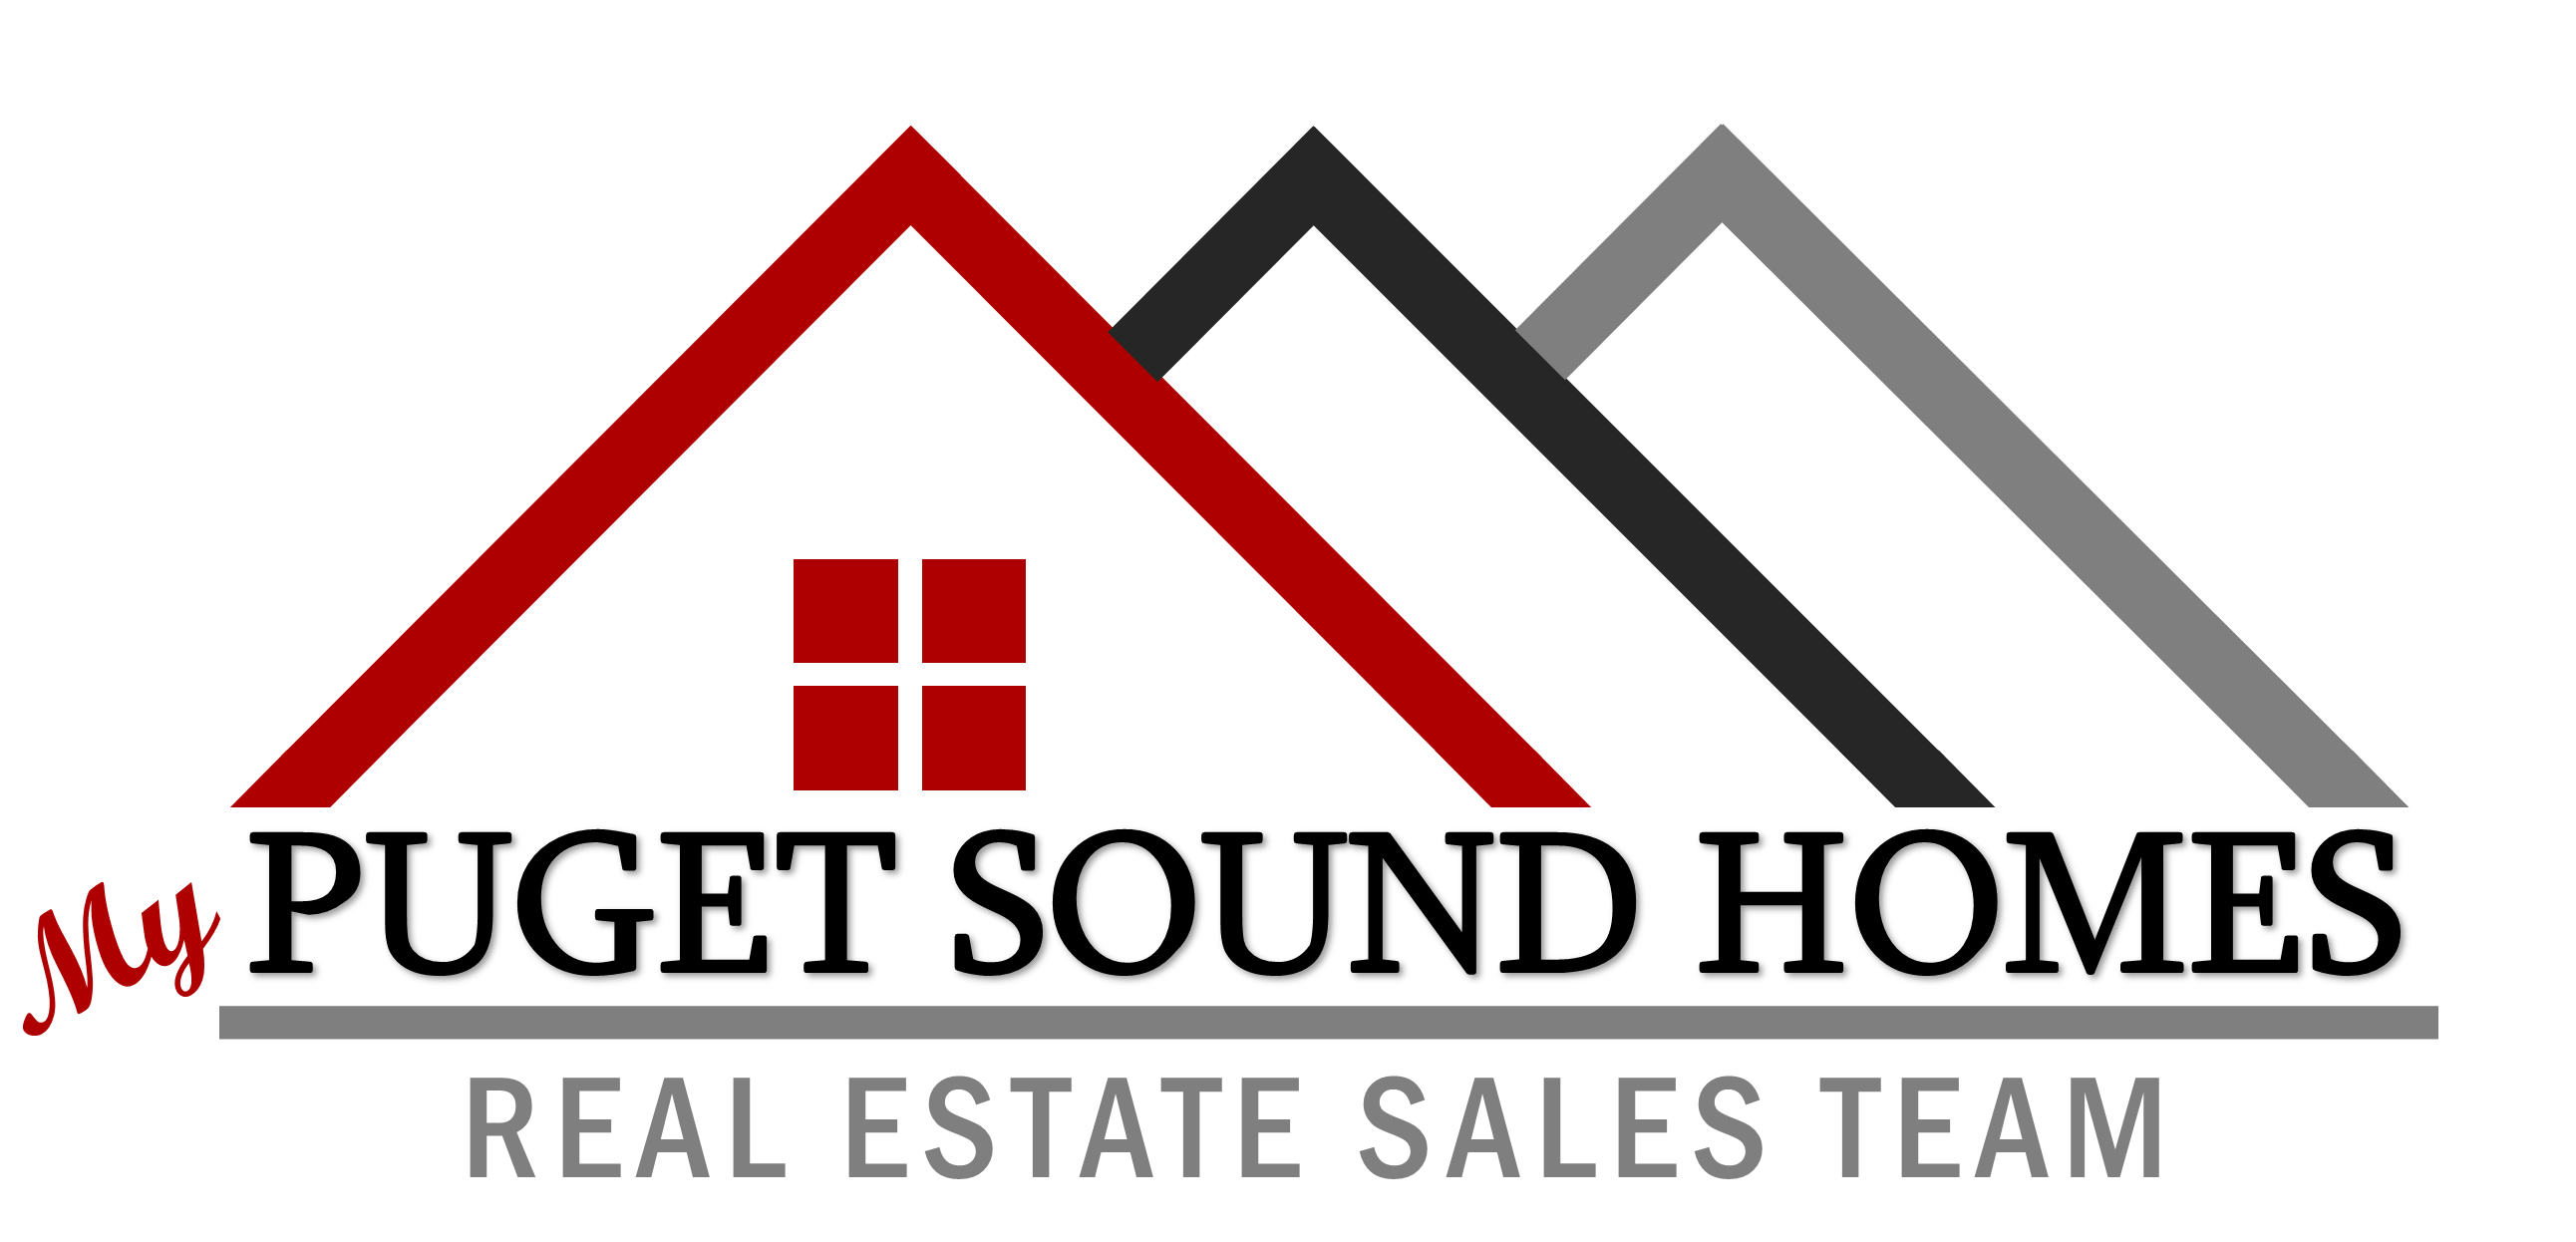 My Puget Sound Homes - Keller Williams logo